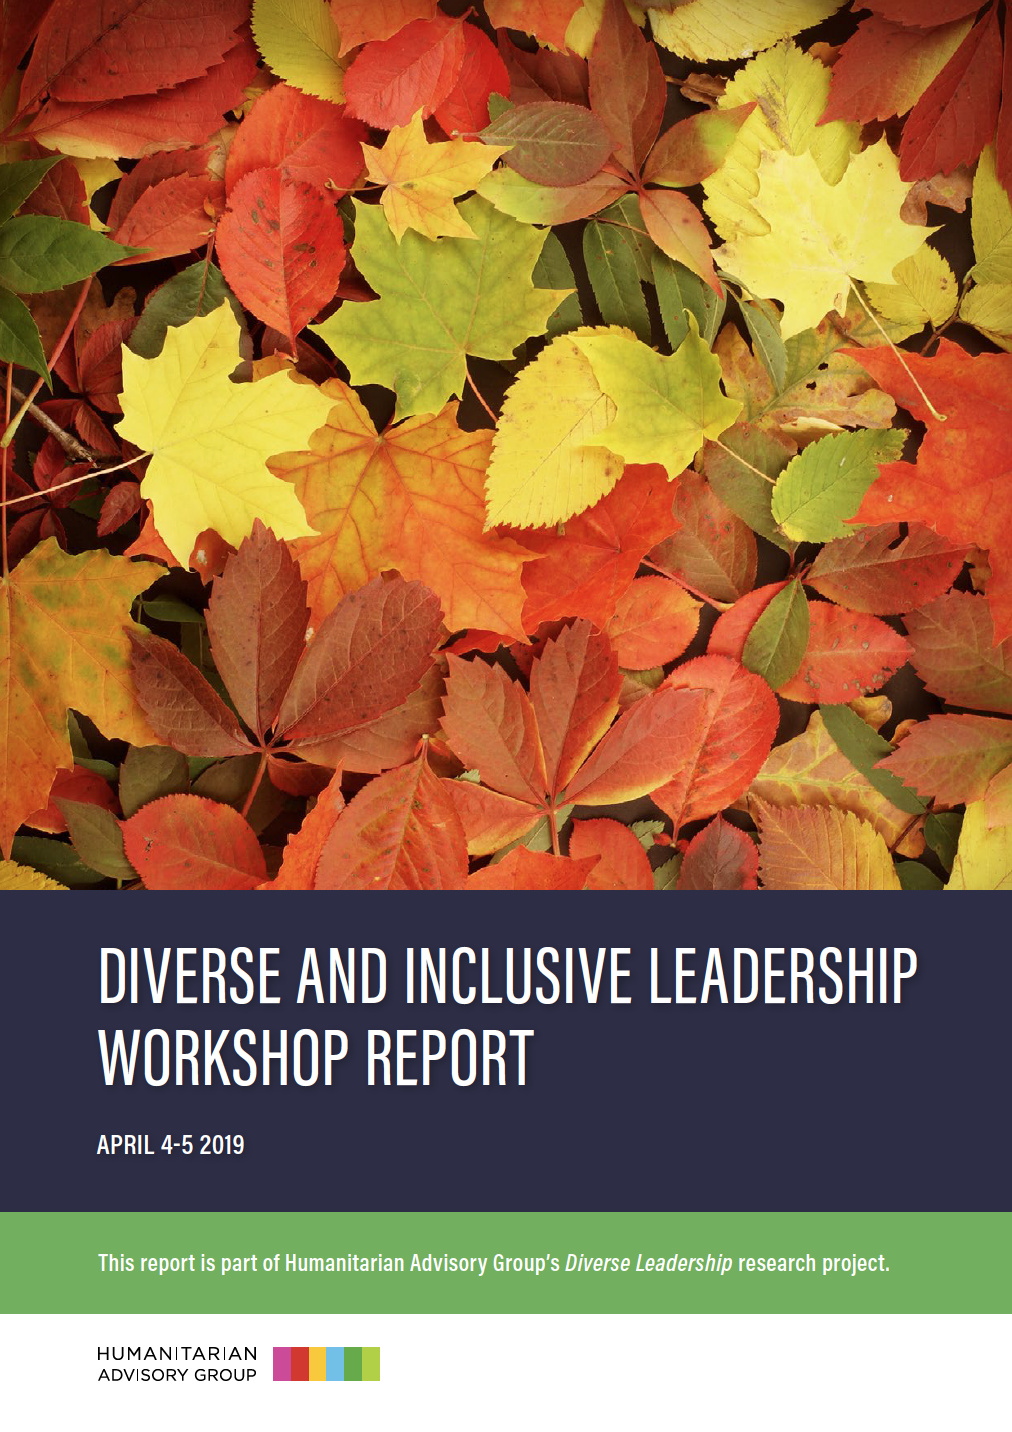 Diverse and Inclusive Leadership Workshop Report